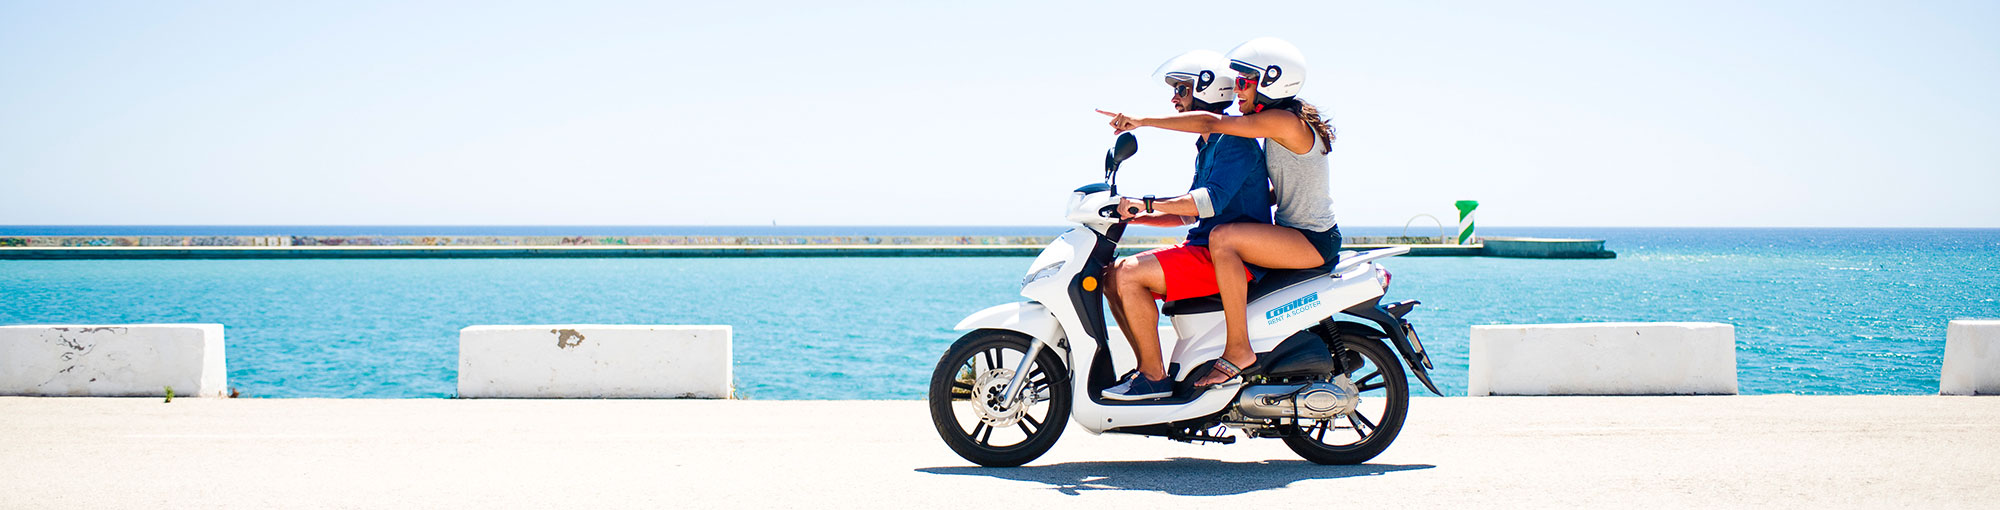 Cooltra scooter rental electric and gasoline